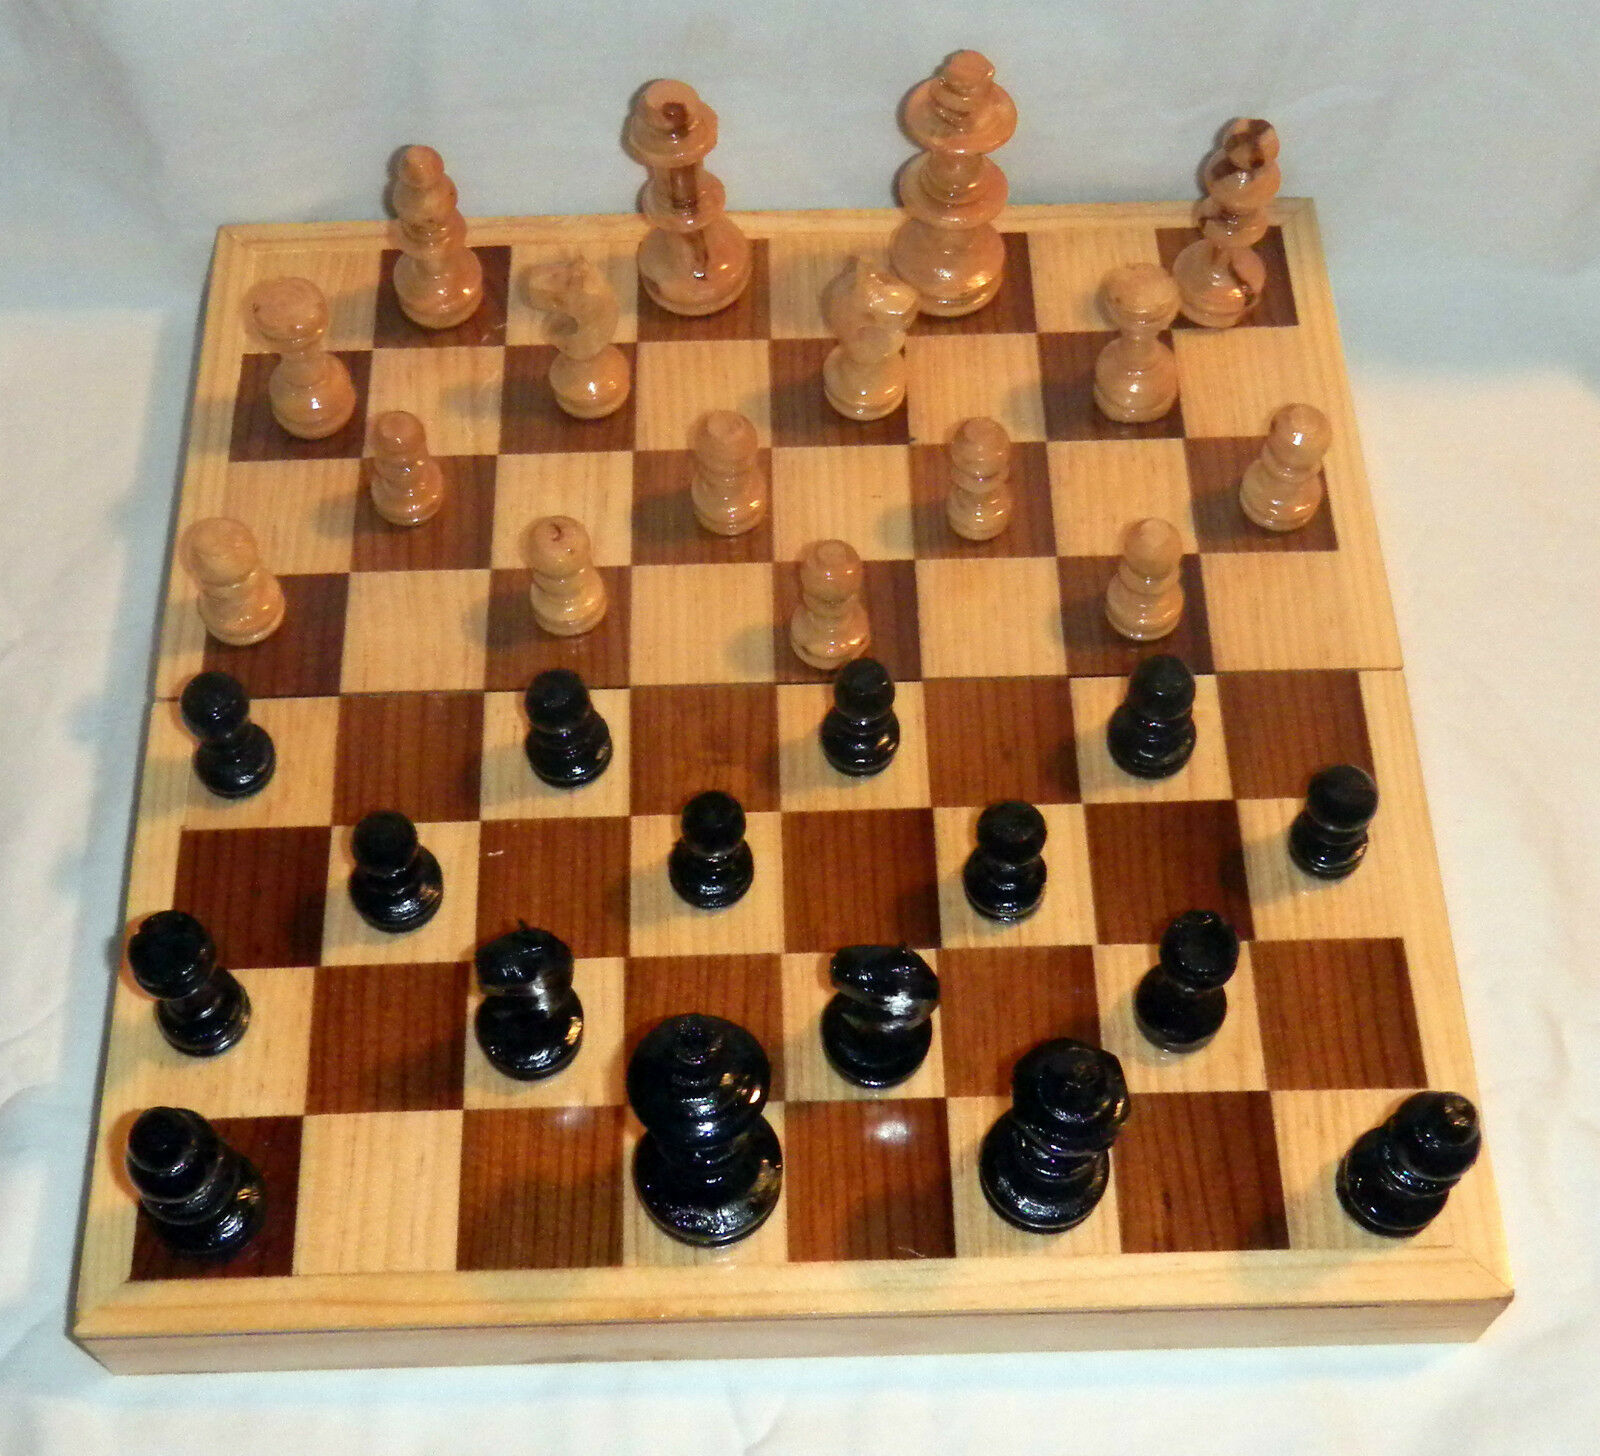 12X12 Square Box All Wood Pcs Ajedrez Chess Game Set Handcrafted In Mexico Nuovo